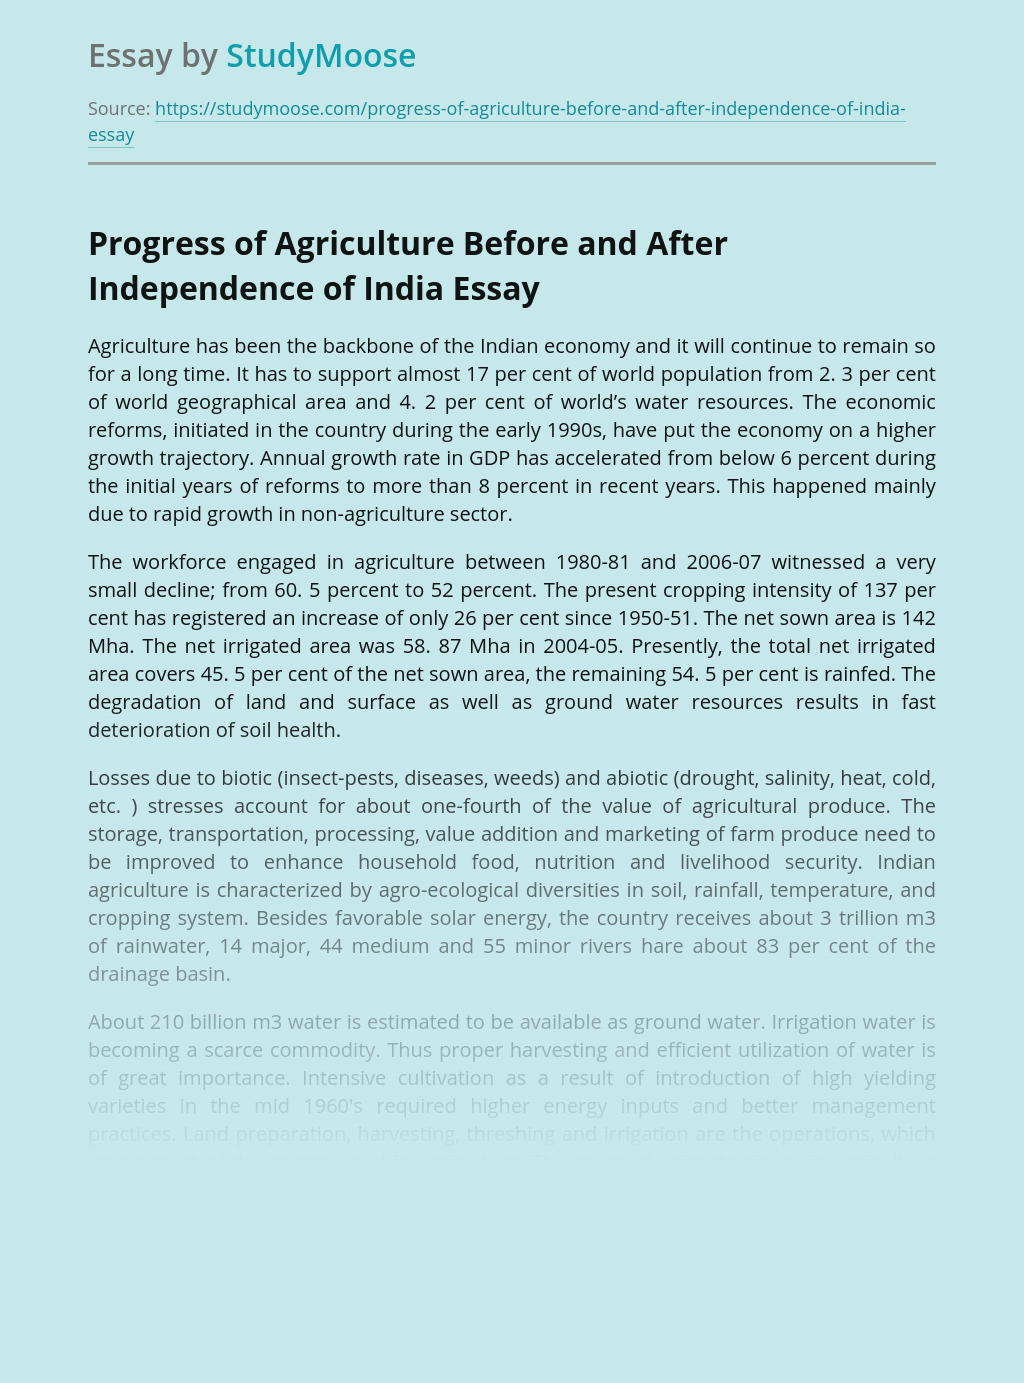 Progress of Agriculture Before and After Independence of India